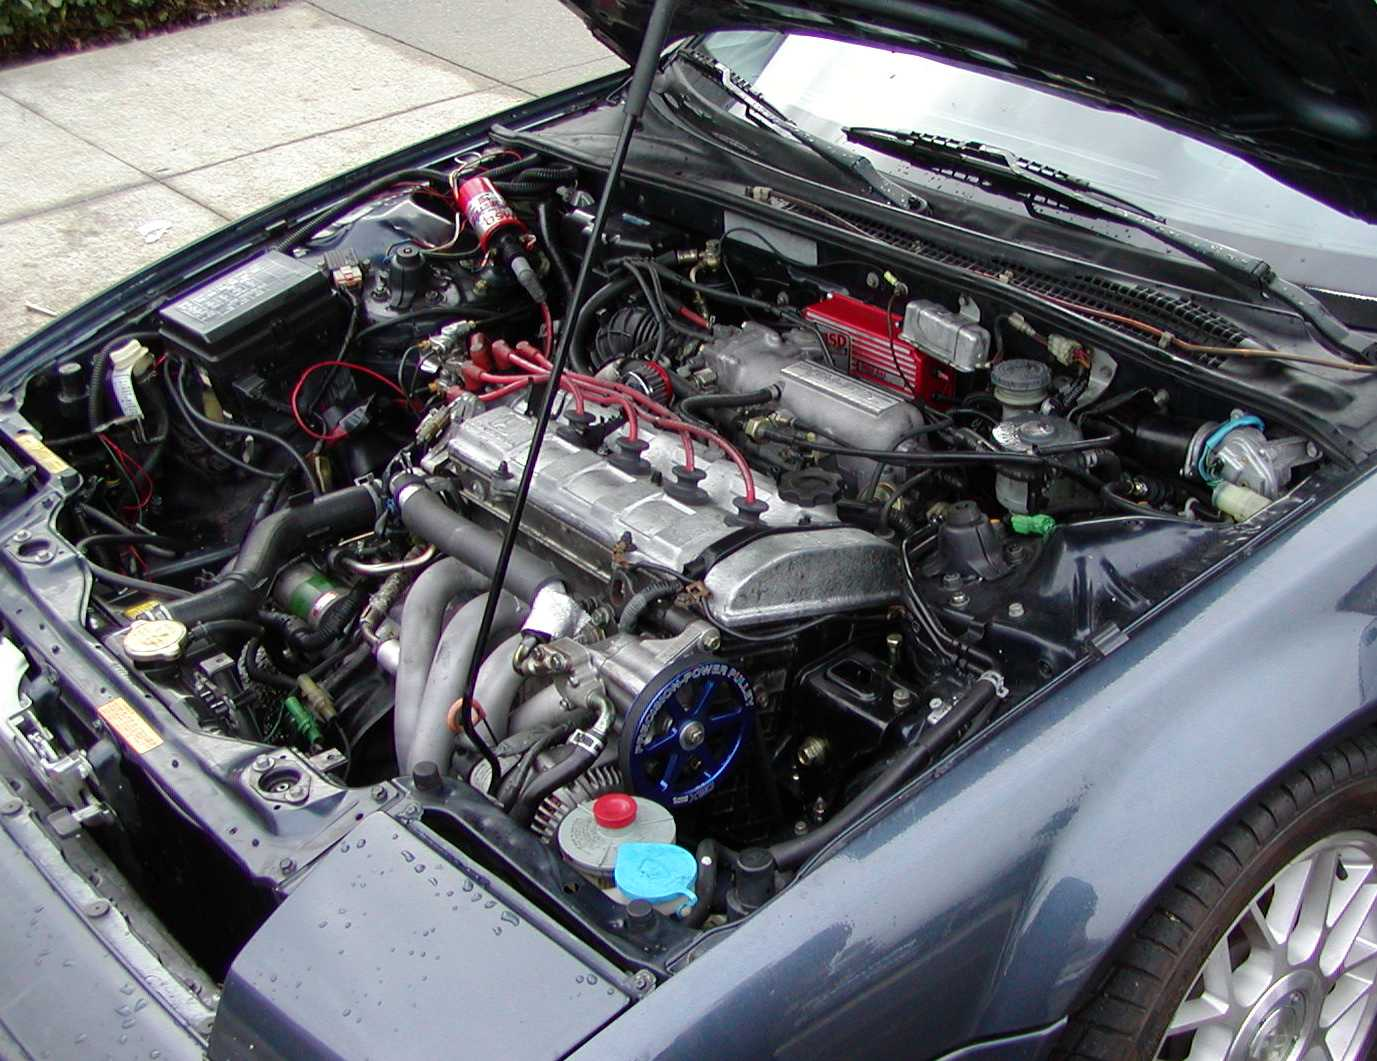 Honda Prelude engine #2